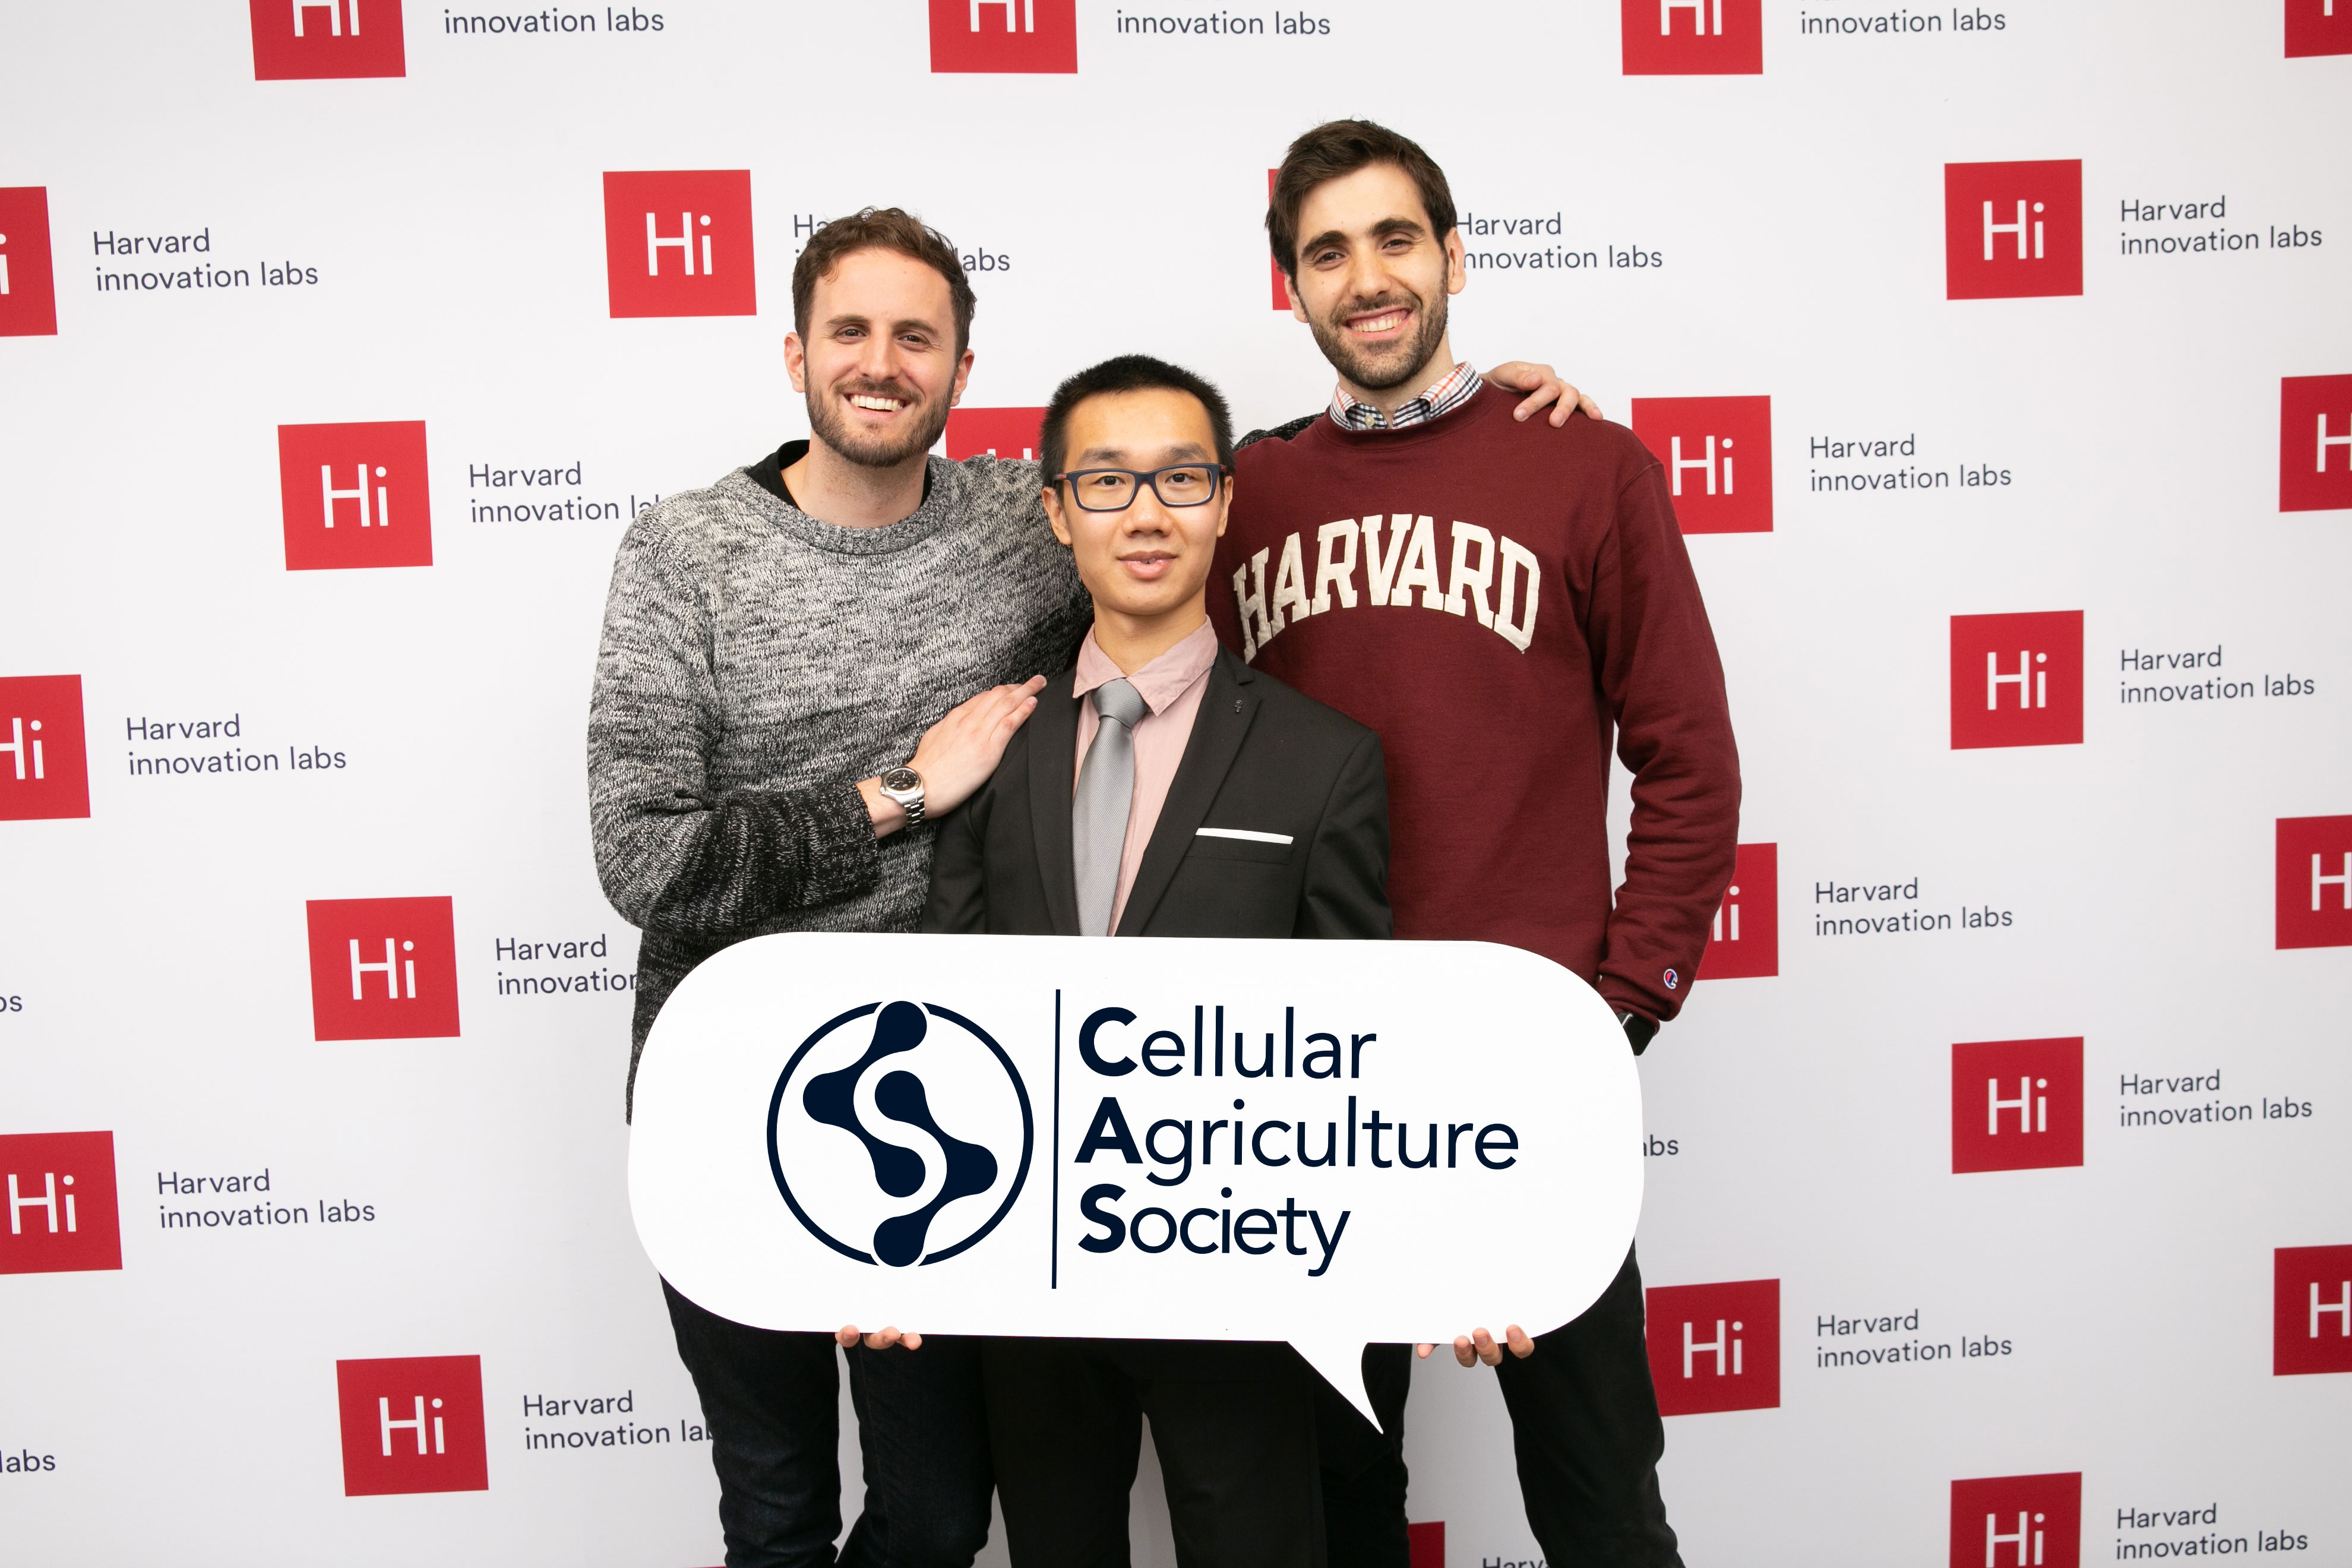 Cellular Agriculture Society